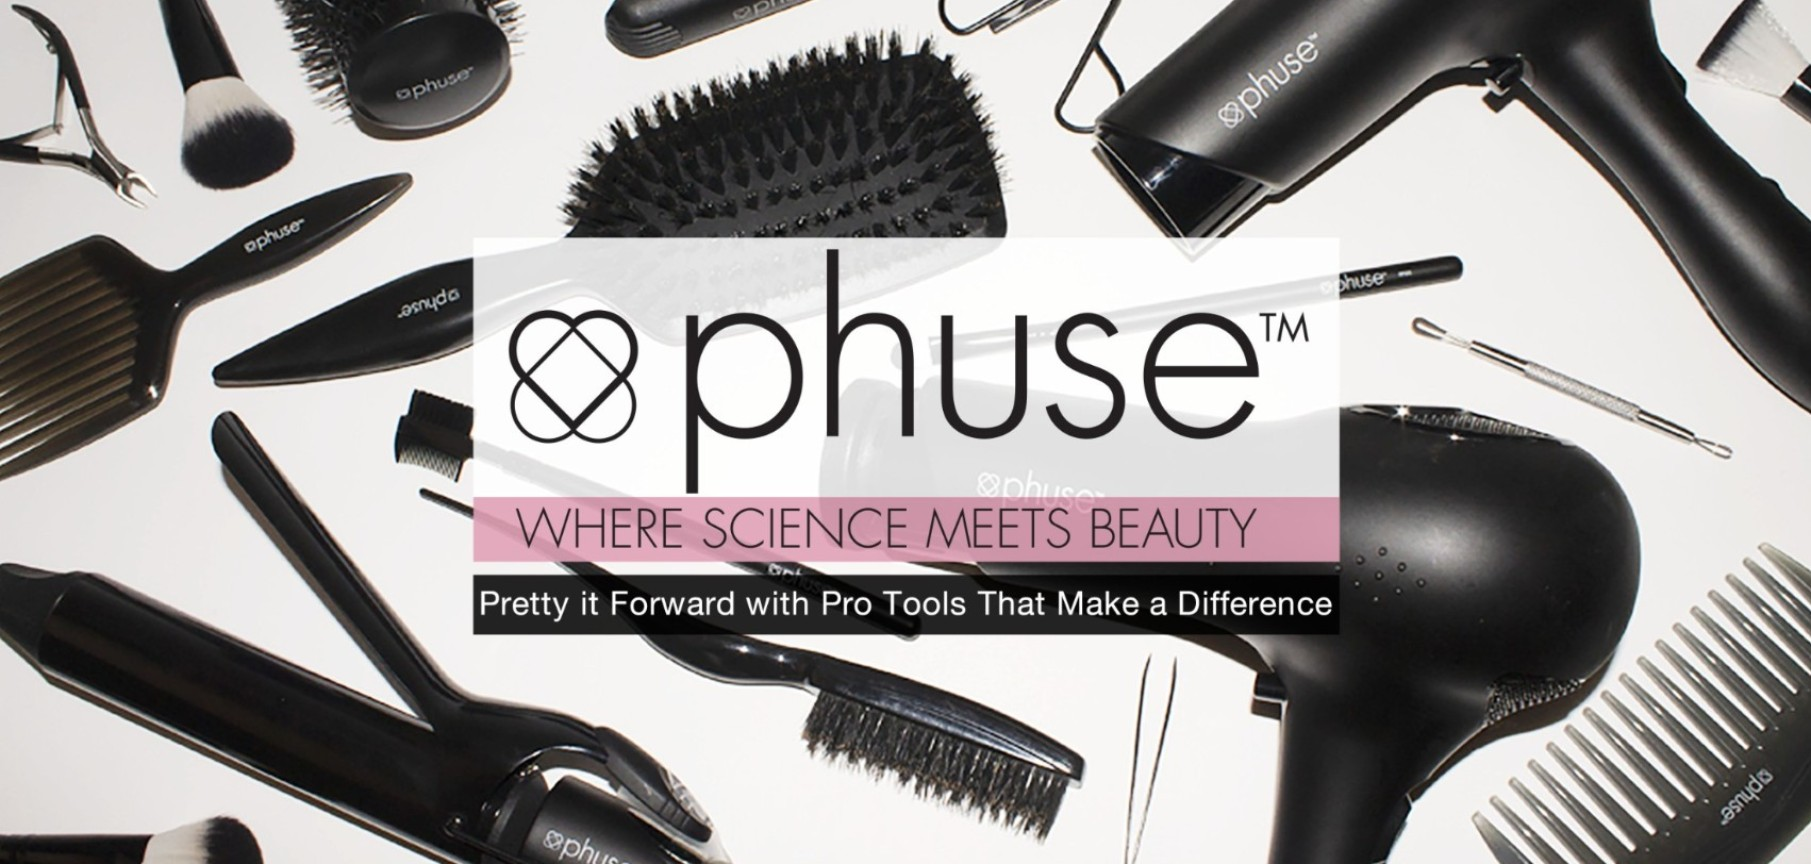 Phuse Beauty Pretty it Forward with Pro Tools that Make a Difference